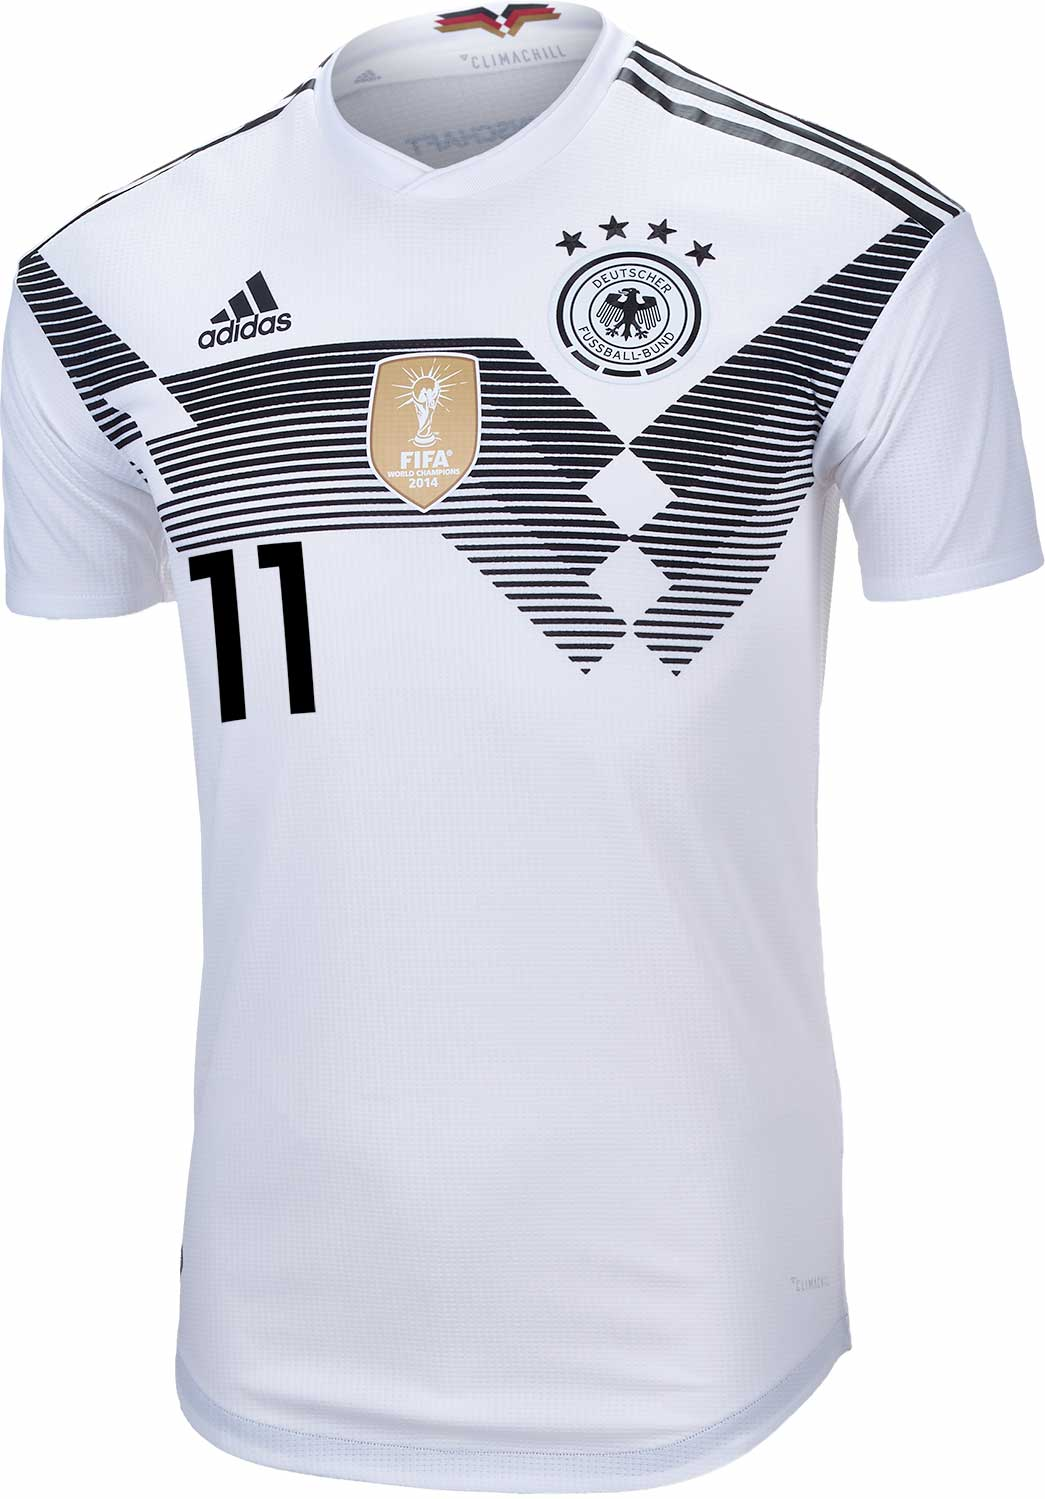 new arrivals b79a3 28ab7 adidas Marco Reus Germany Authentic Home Jersey 2018-19 ...